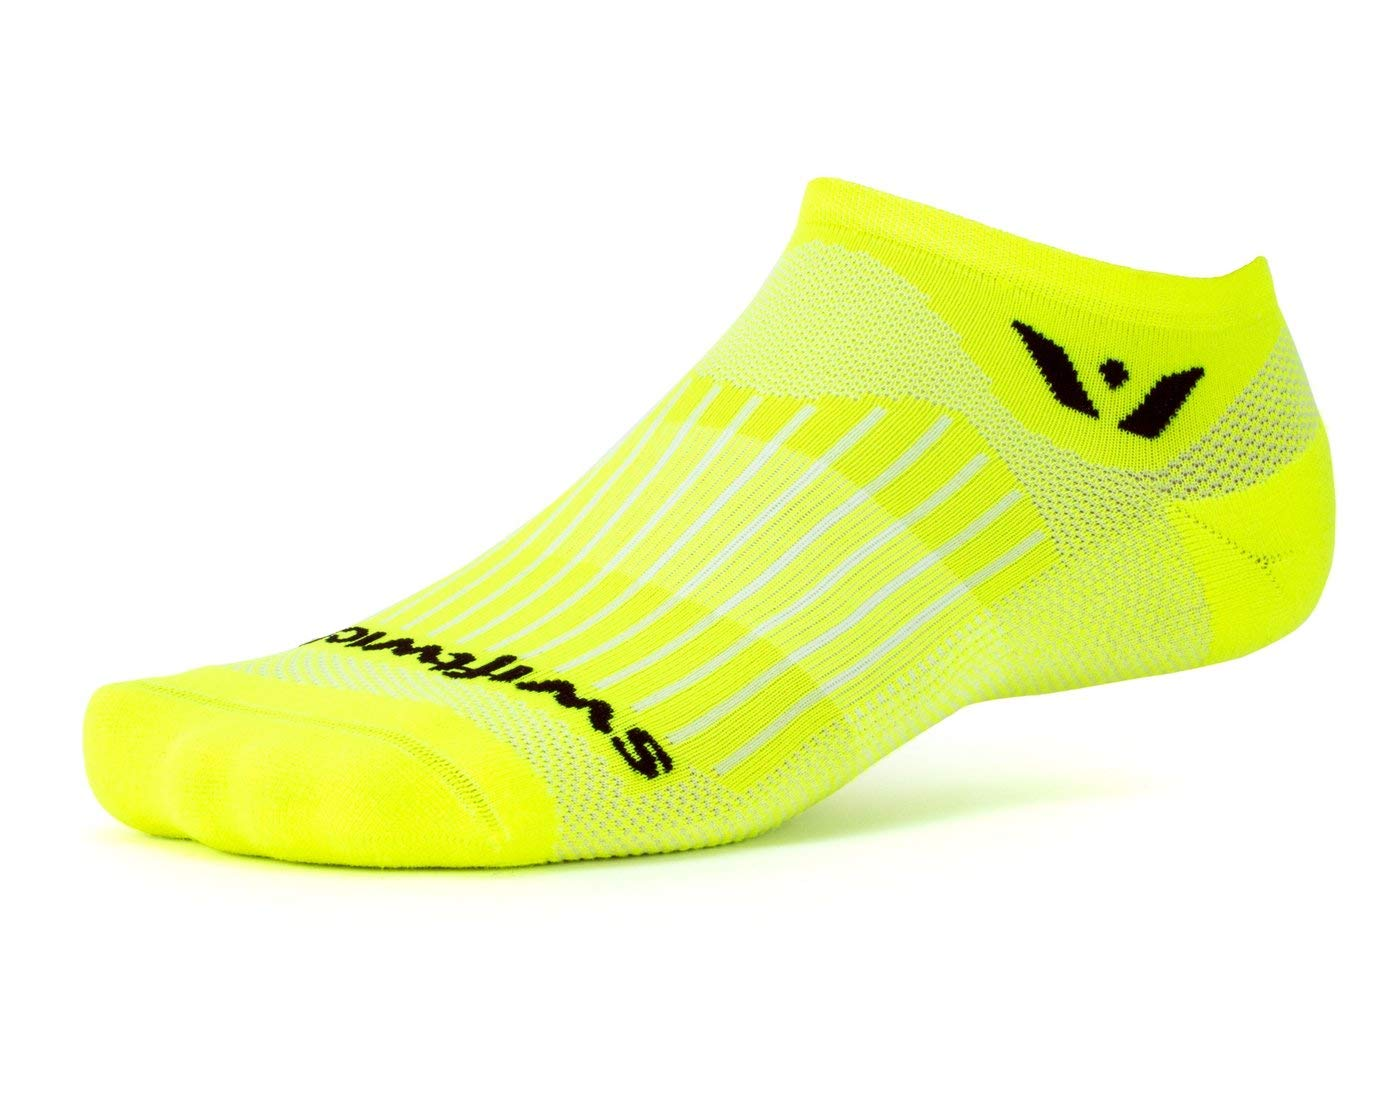 Socks Built for Running /& Cycling Fast Drying Swiftwick- Aspire Zero Firm Compression No Show Socks AIREZERO